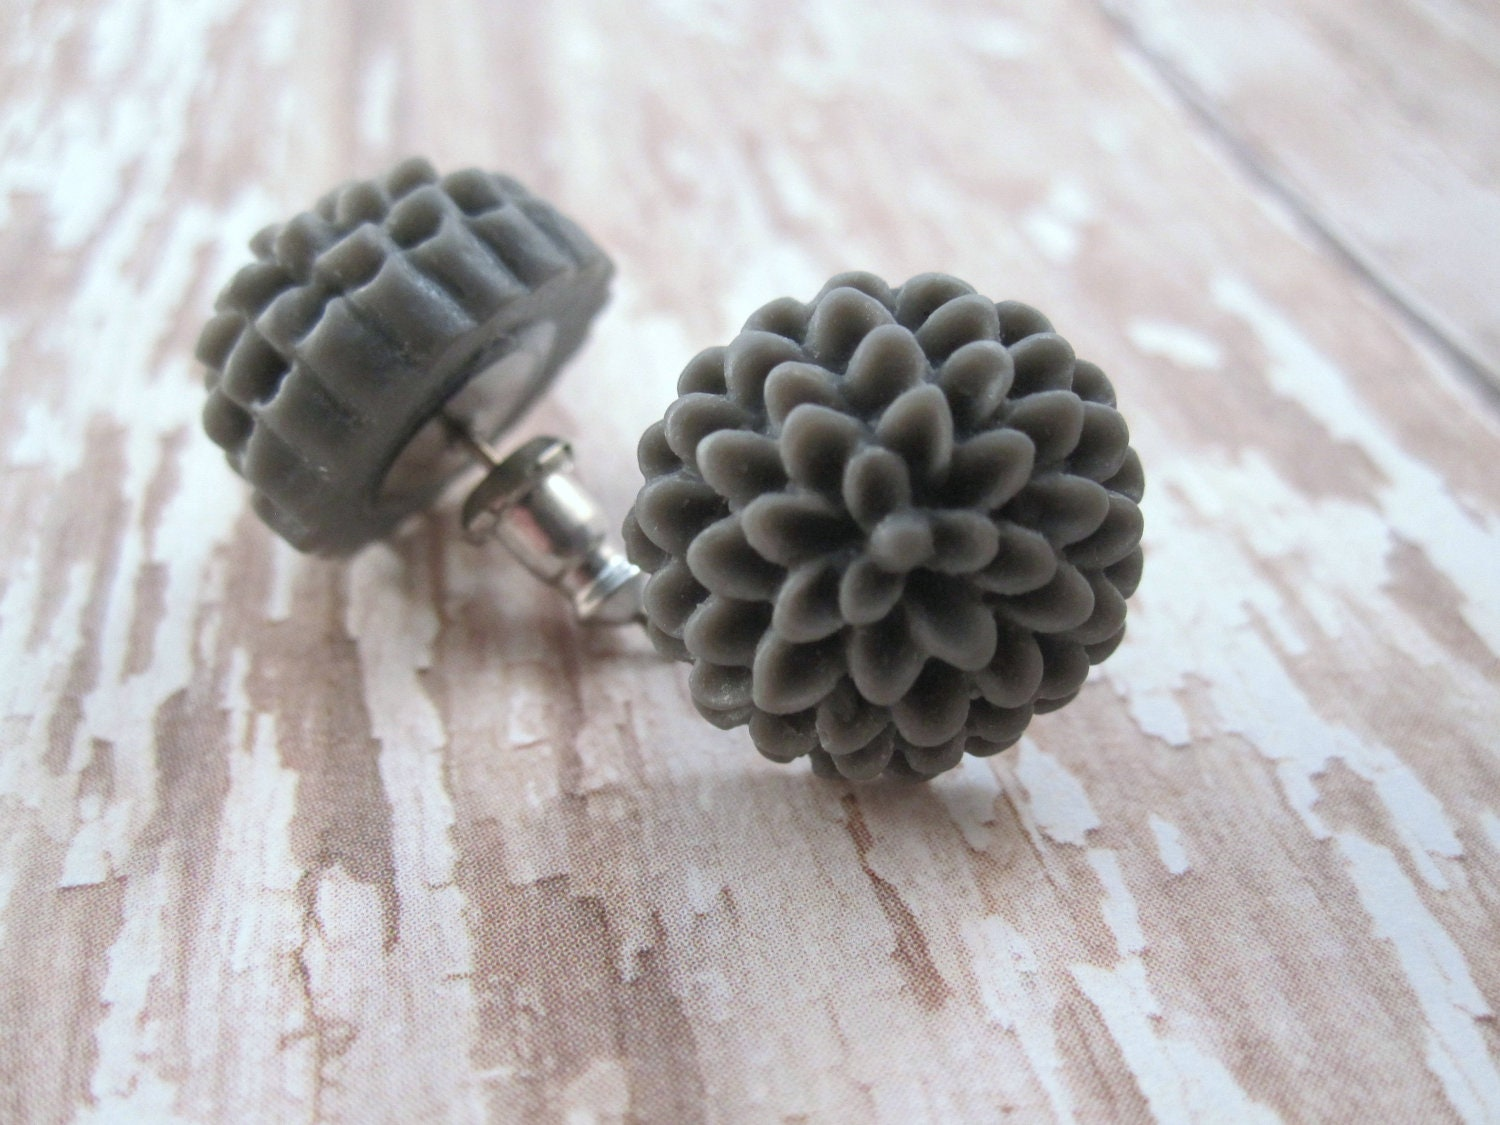 Grey mum earrings - charcoal gray flowers on titanium studs - NICKEL FREE for sensitive ears - LazyOwlBoutique